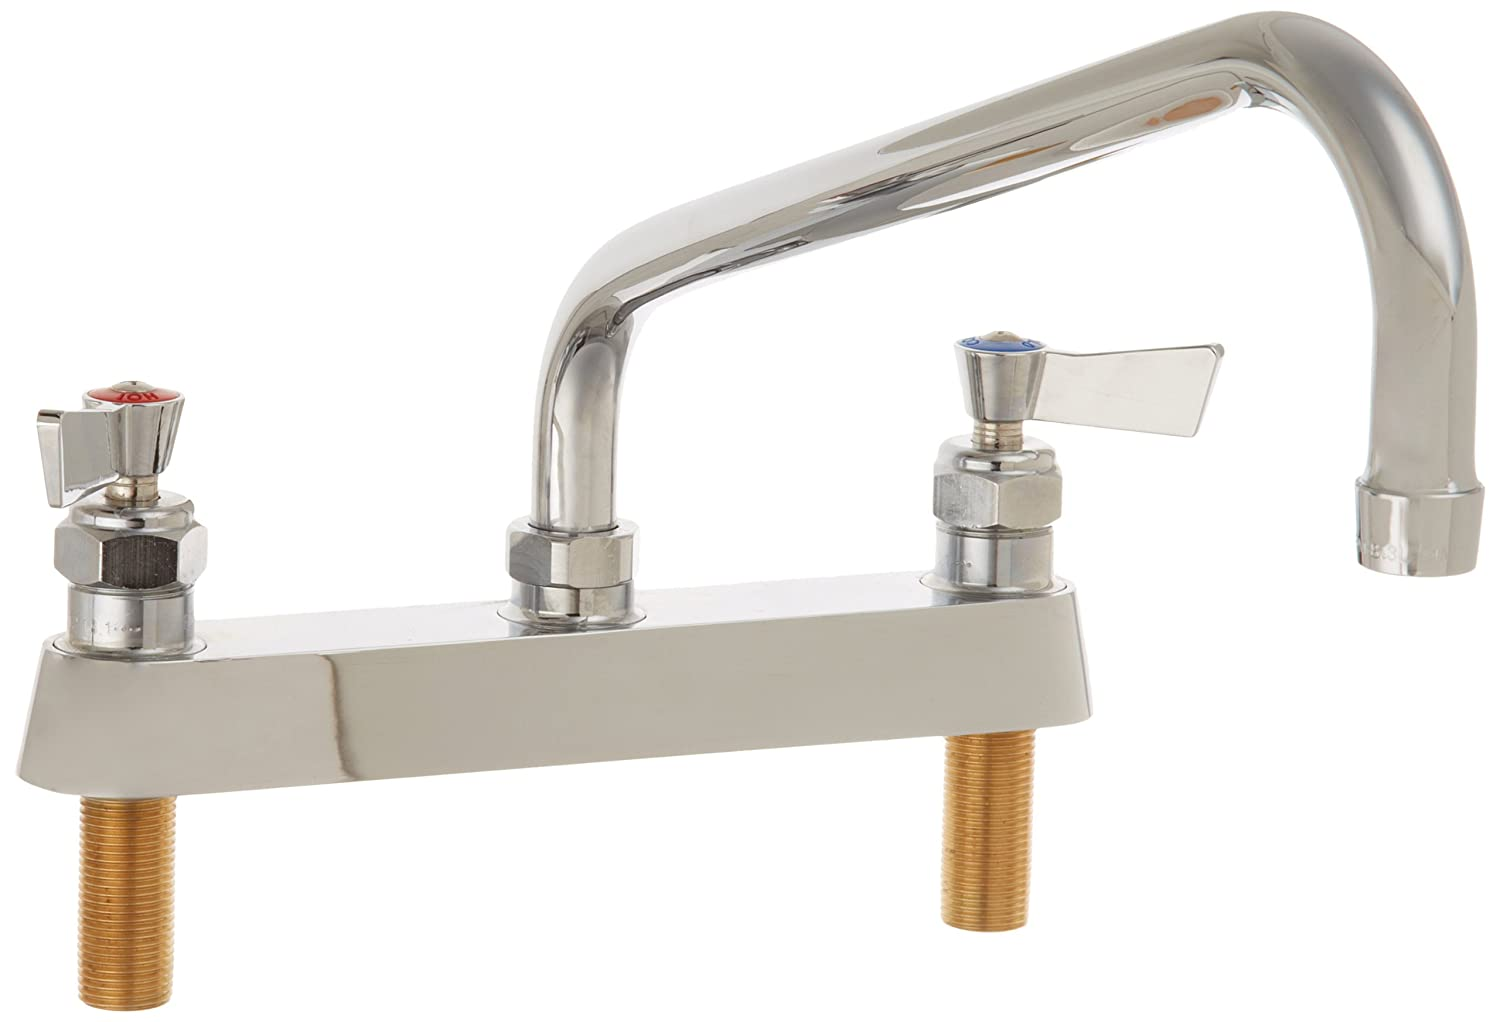 Fisher 3313 8 Deck Mounted Faucet with 12 Spout